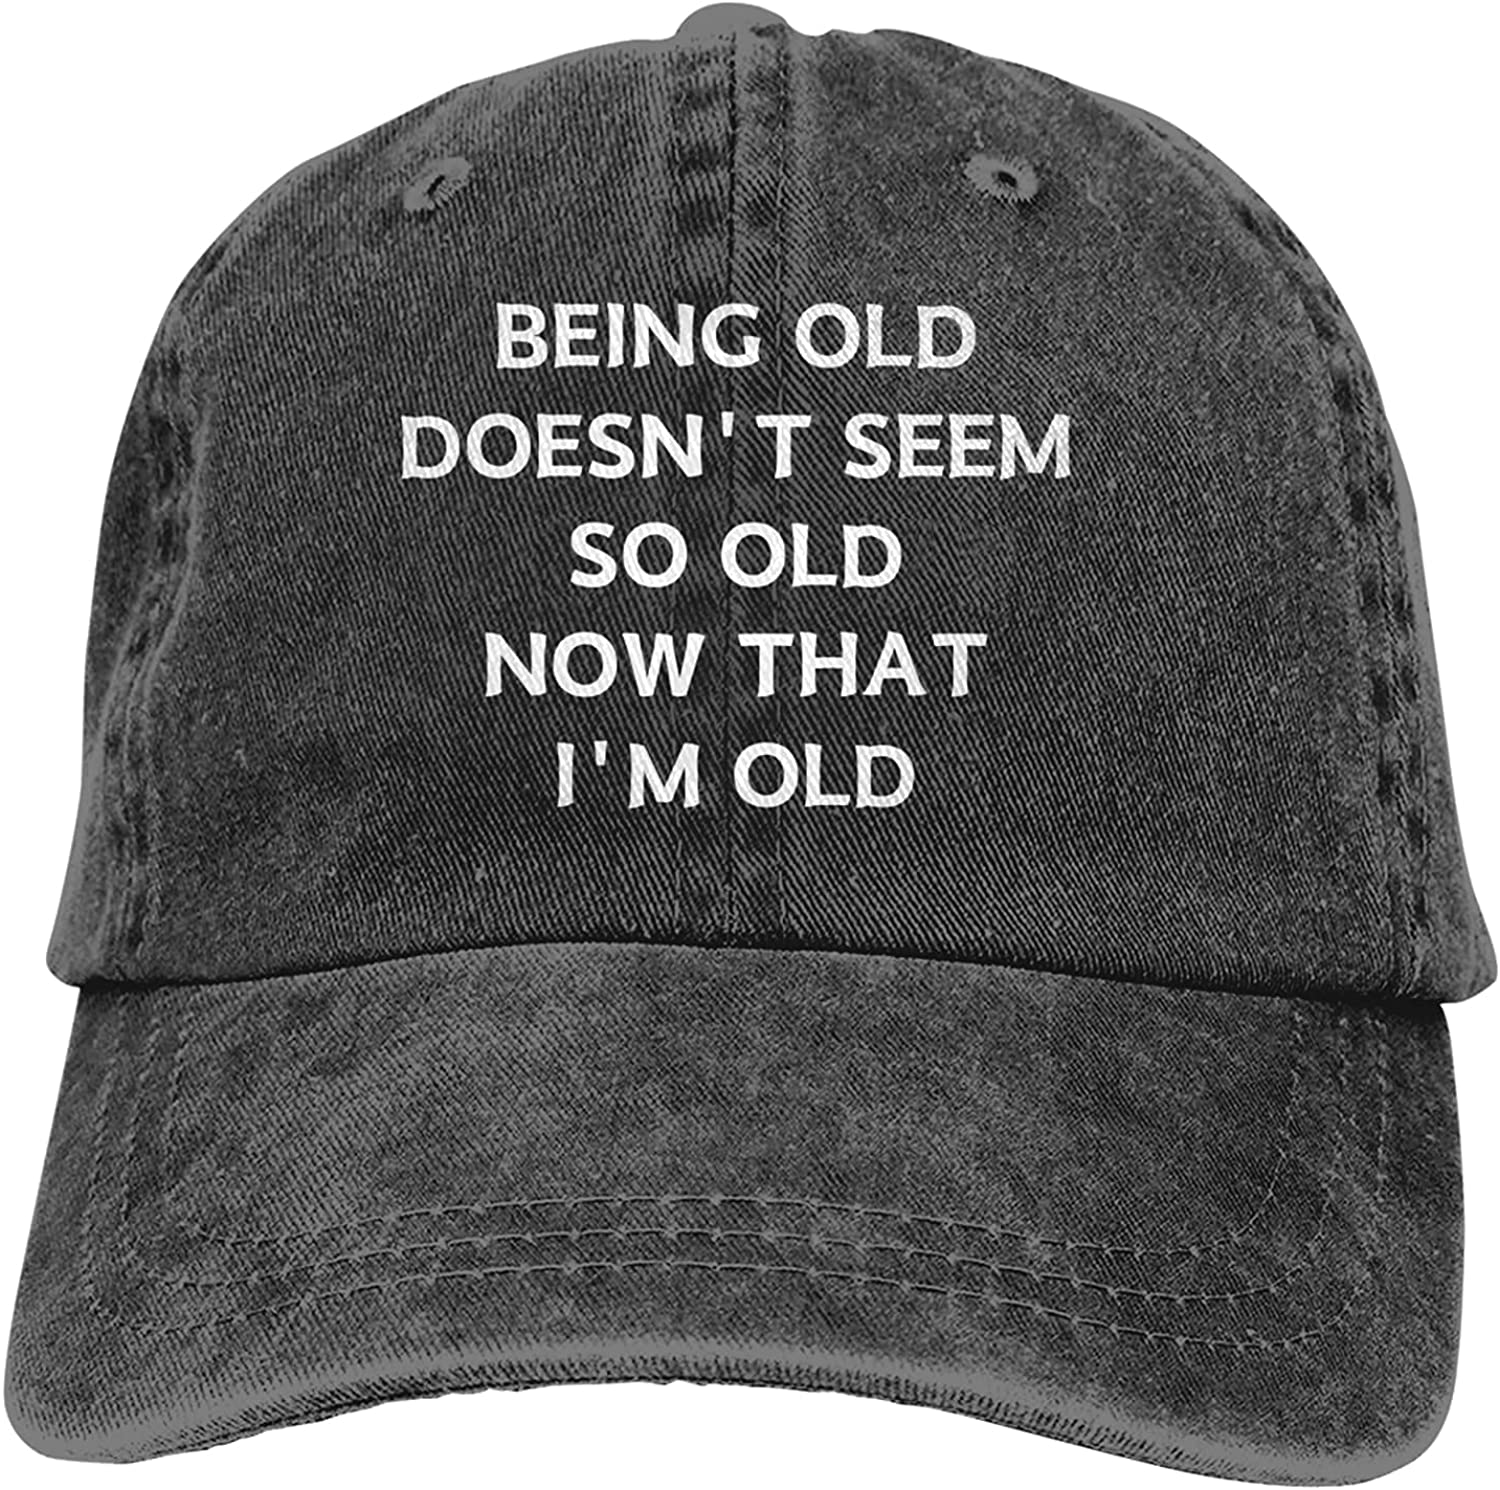 Being Old Doesn't Seem So Old Now That I'm Old Baseball Cap Trucker Hat Retro Cowboy Dad Hat Classic Adjustable Sports Cap for Men&Women Black